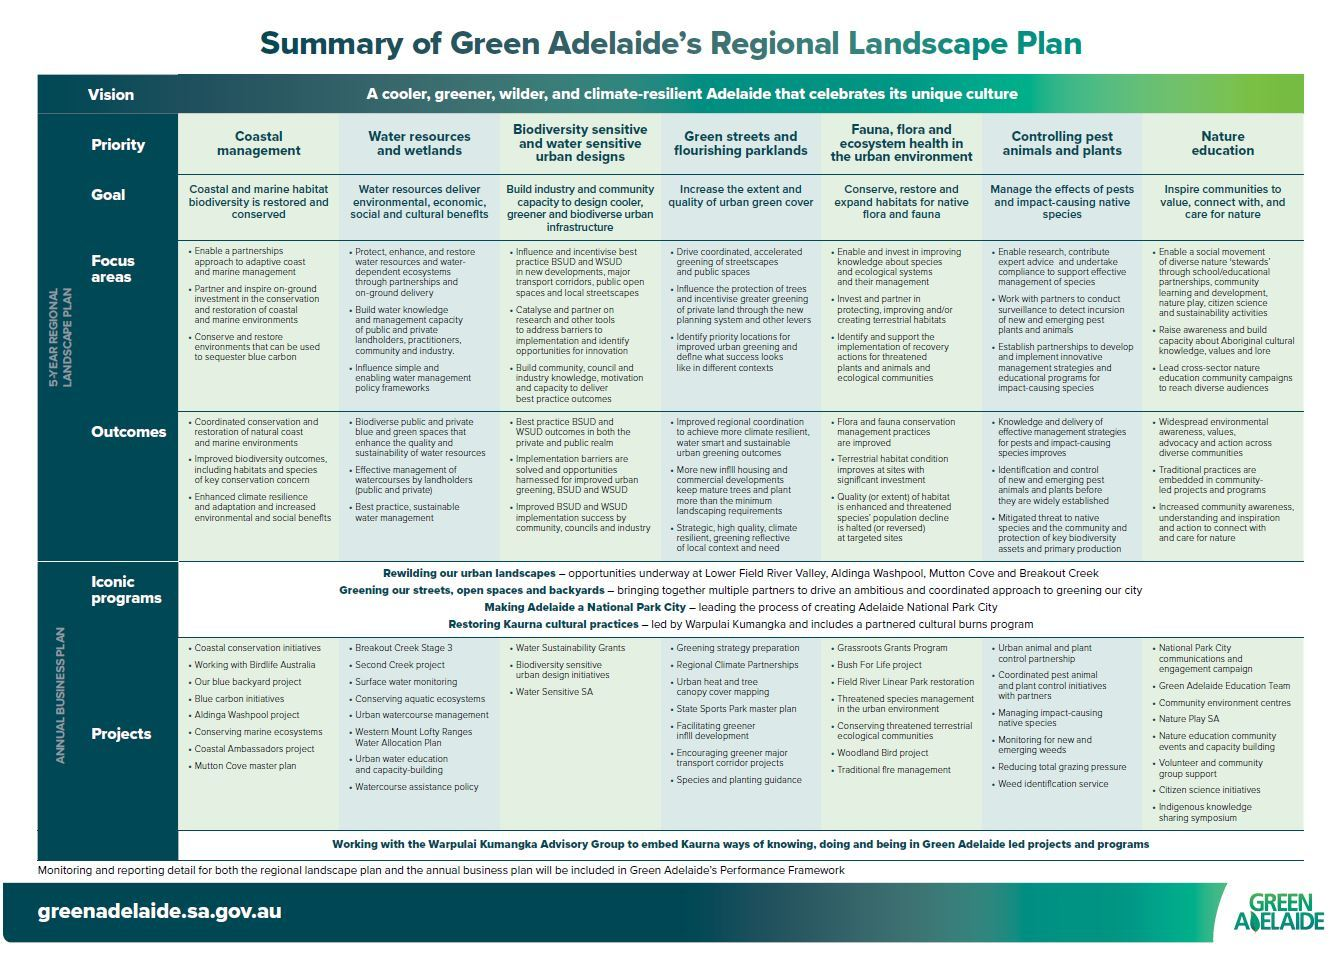 Summary of both plans - Green Adelaide